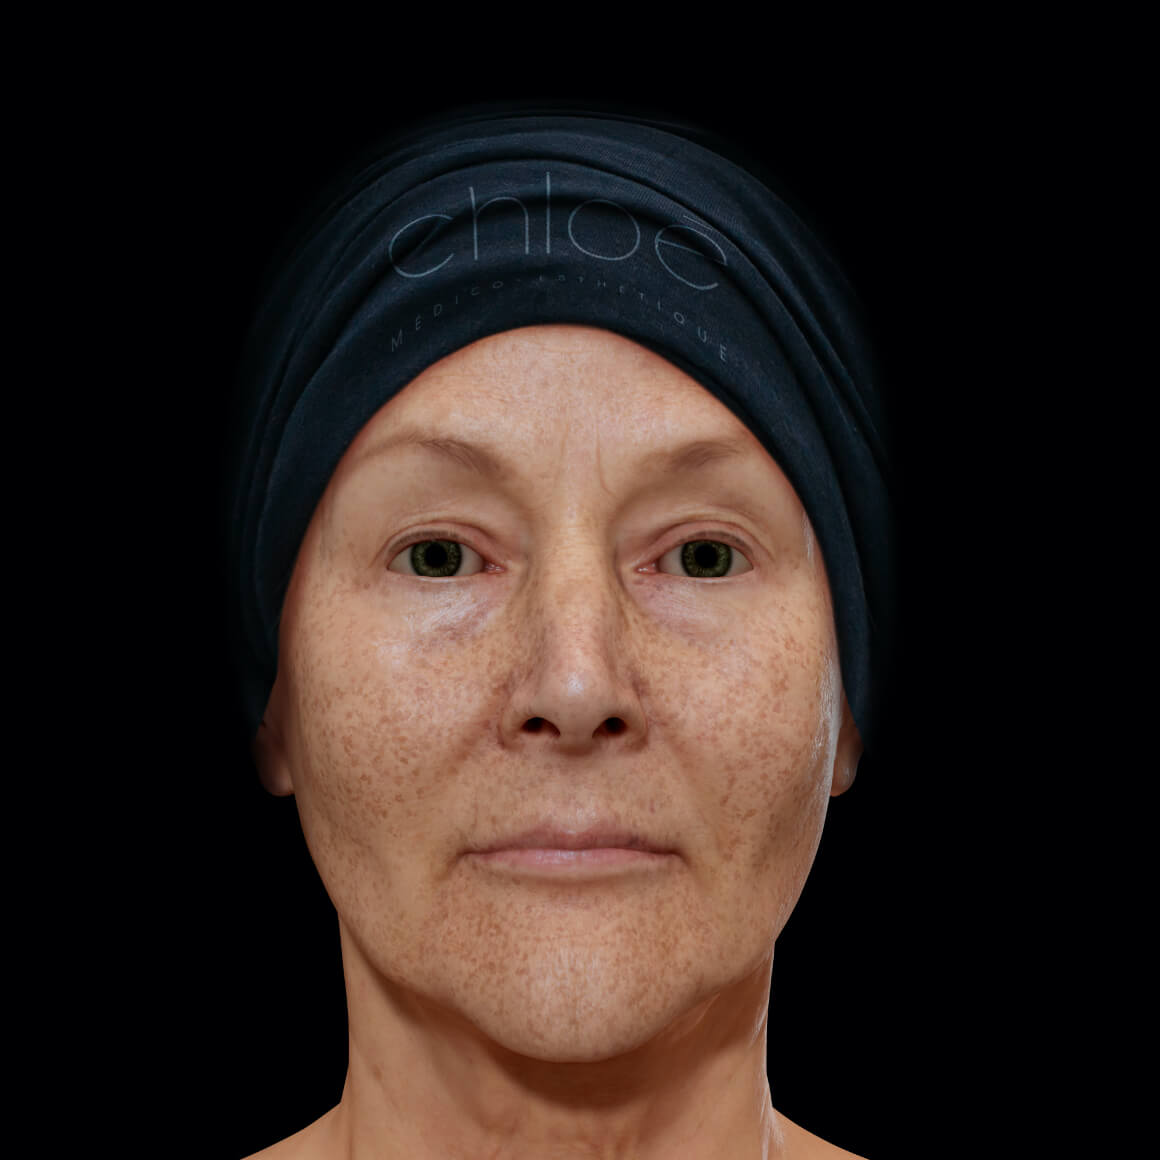 A female patient from Clinique Chloé facing front with pigmented lesions, or dark spots, on her entire face